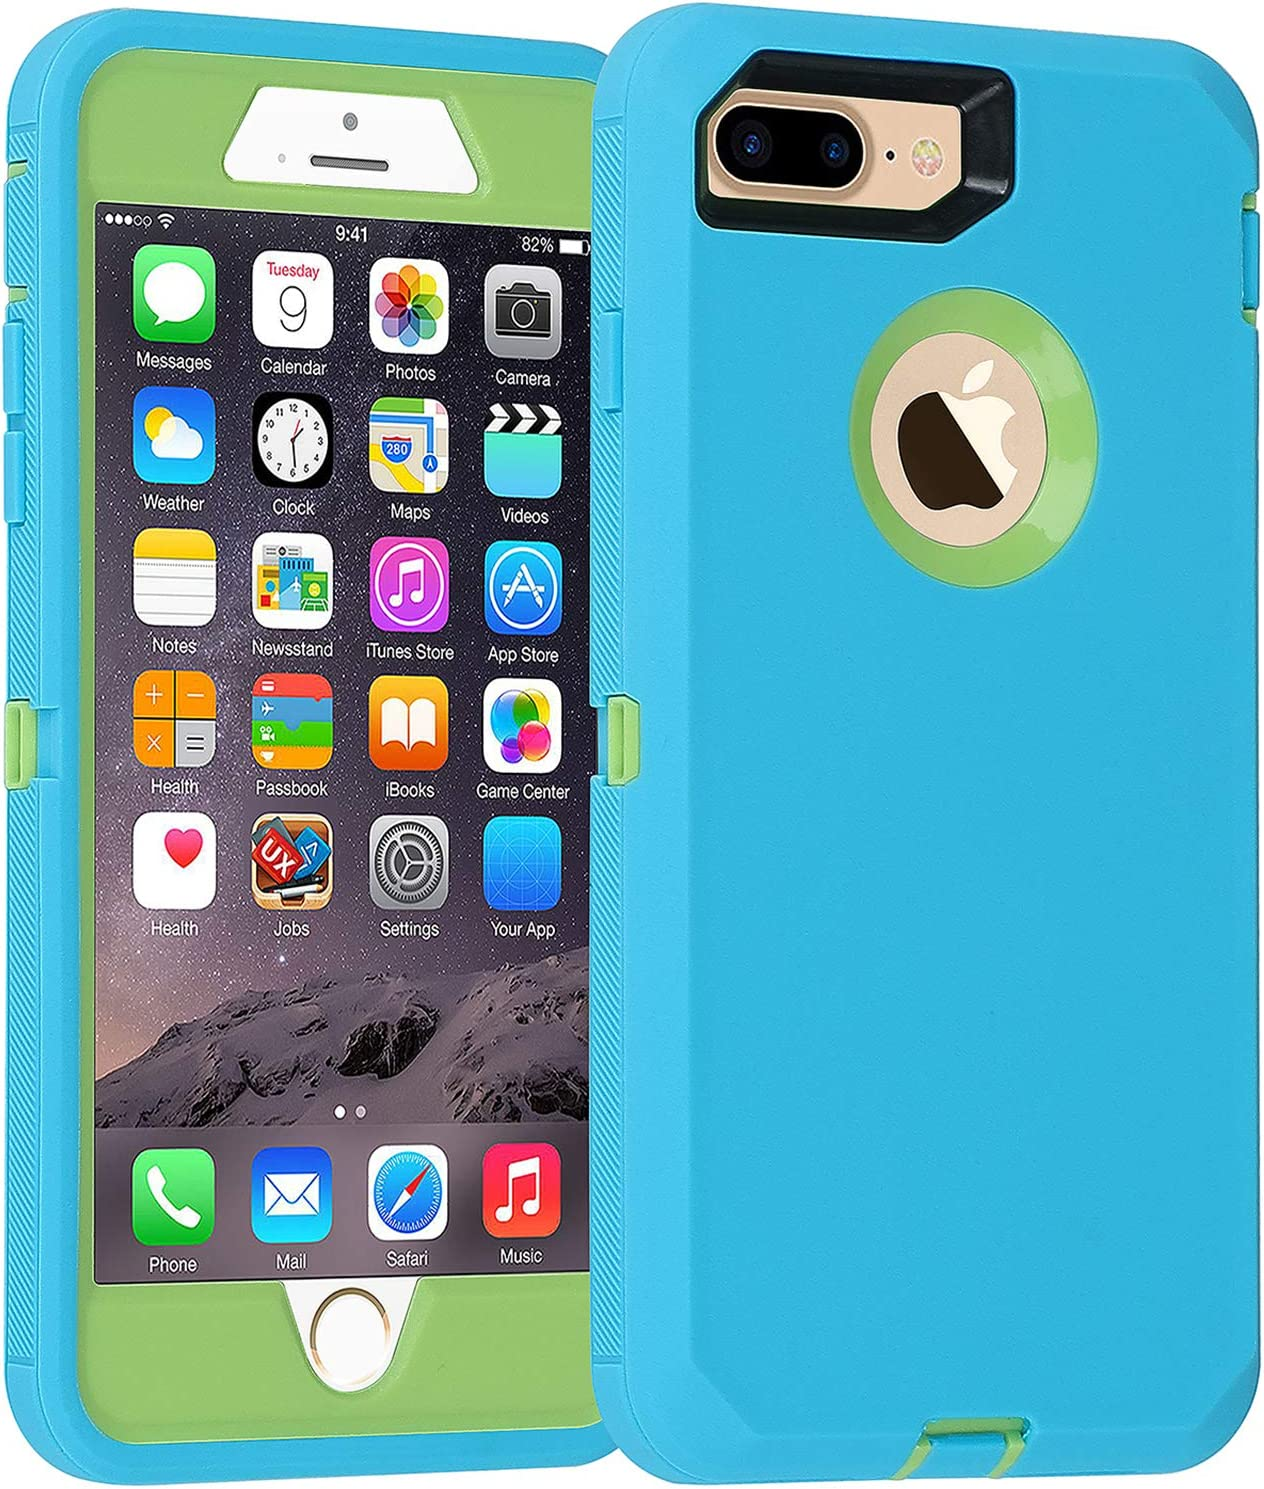 Co-Goldguard Case for iPhone 7 Plus/8 Plus Heavy Duty 3 in 1 Built-in Screen Protector Durable Cover Dust-Proof Shockproof Scratch-Resistant Shell Compatible with iPhone 7+/8+ 5.5,Teal&Green